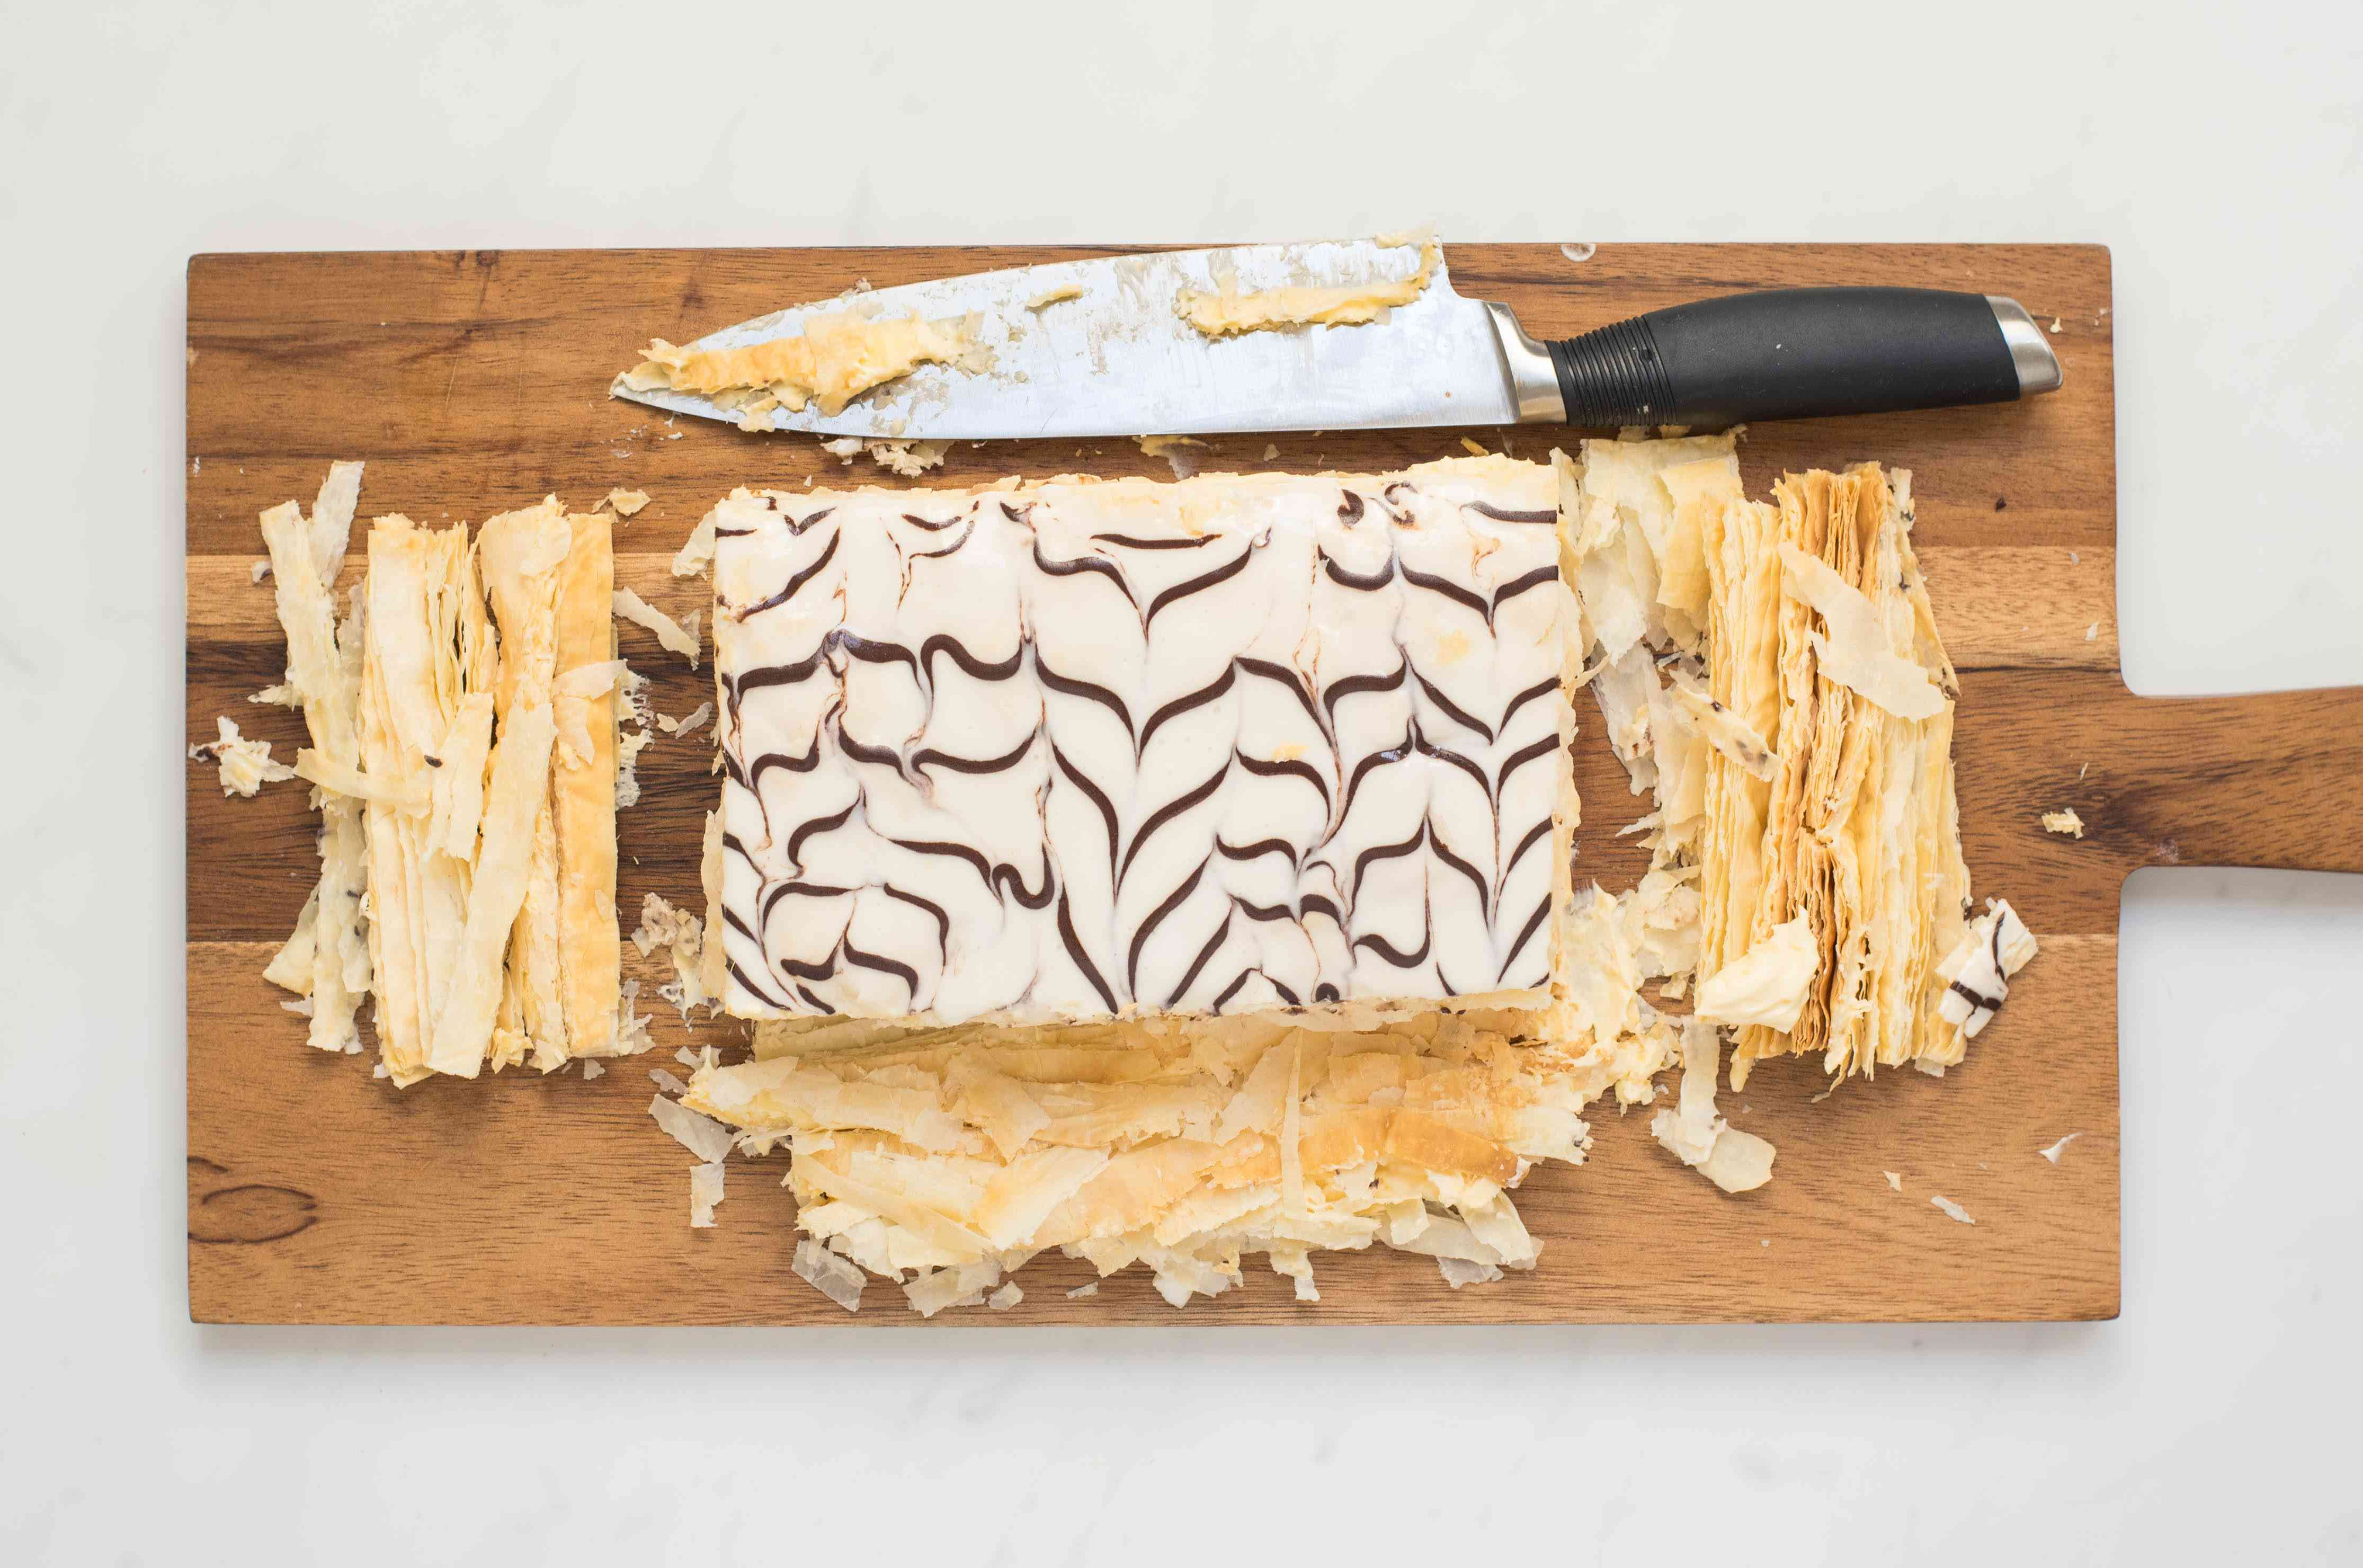 The sides of the mille-feuille are trimmed with a knife